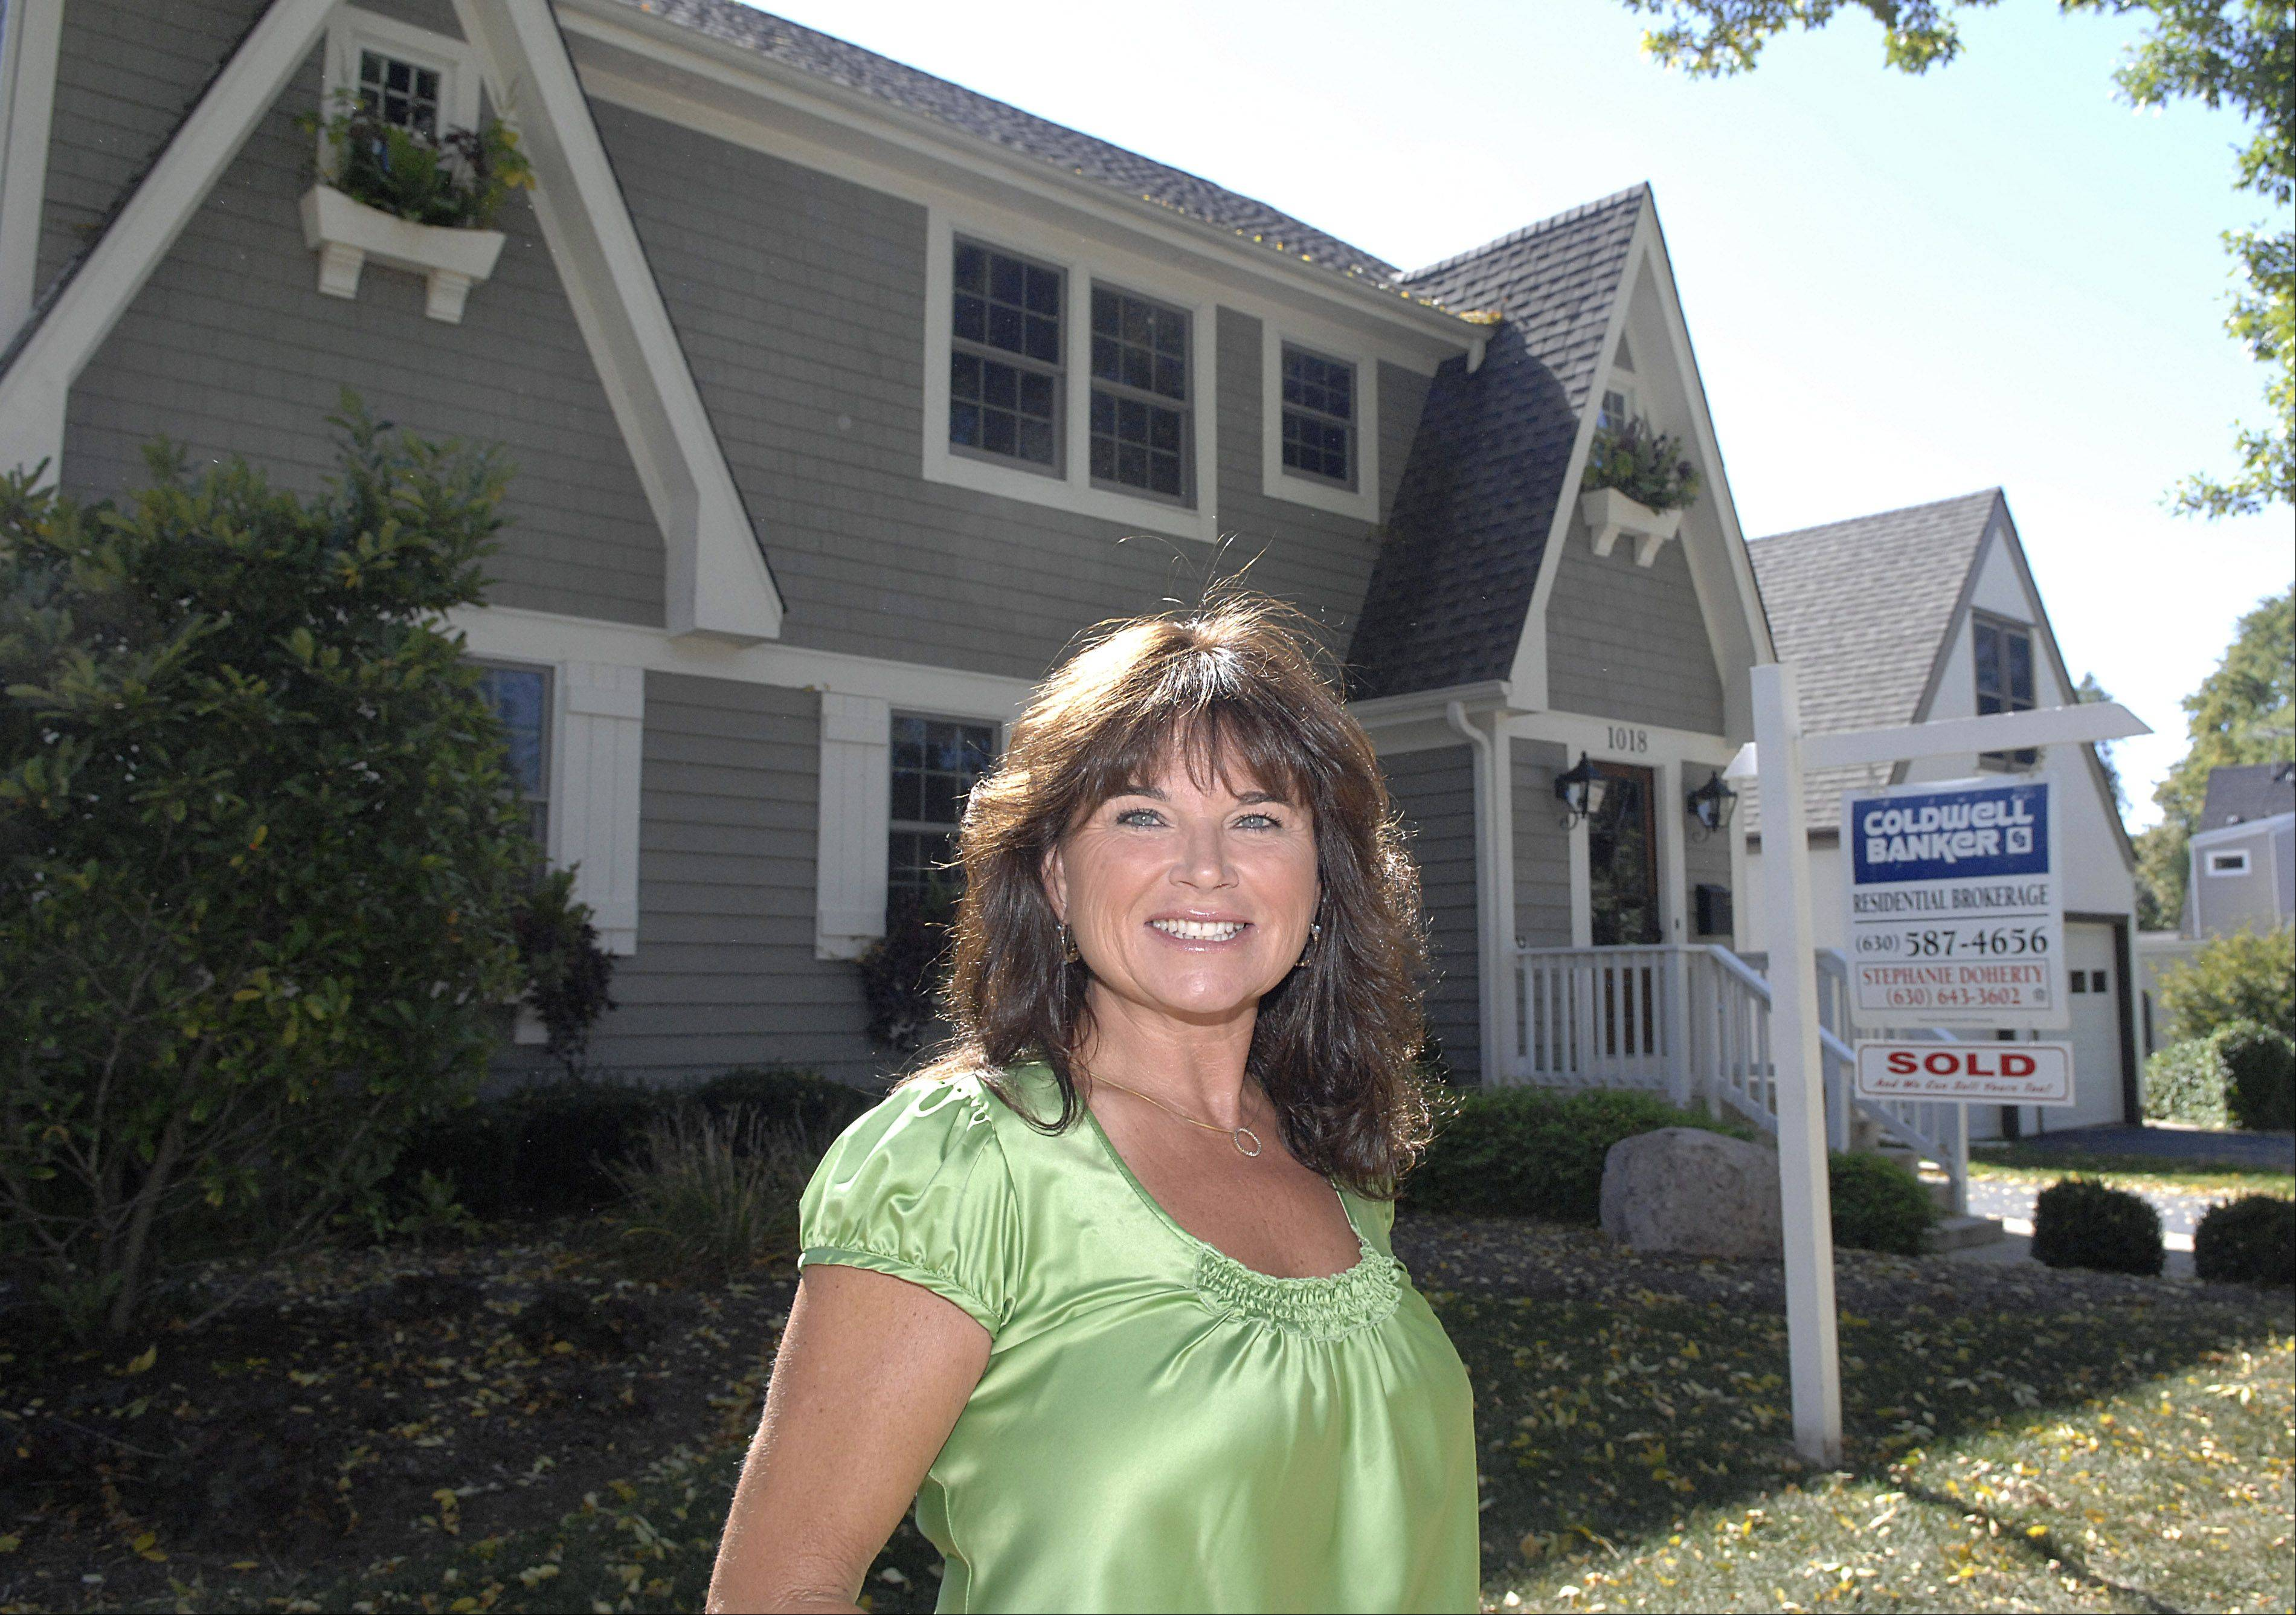 Stephanie Doherty, Realtor with Coldwell Banker Residential Brokerage in St. Charles, expects spring to be busier than usual with new listings already hitting the market.